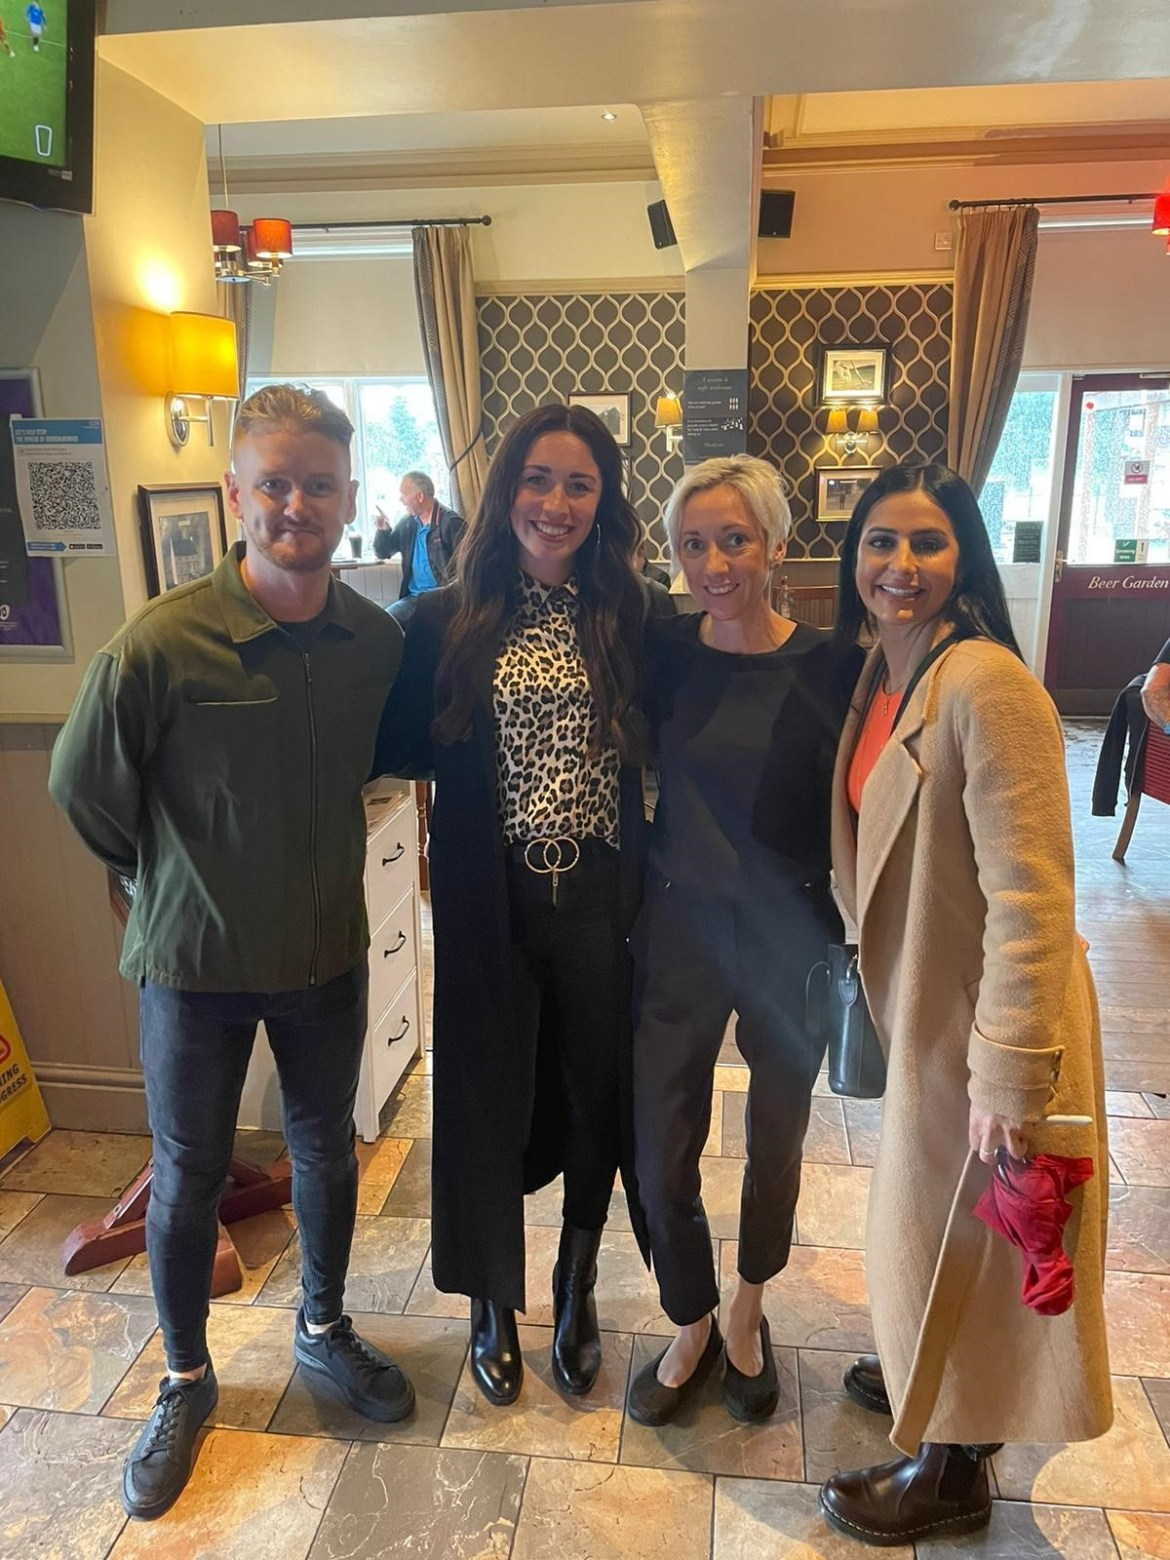 Coronation Street stars with Laura Cotter, Manager of the Red Lion Pub in Lowton